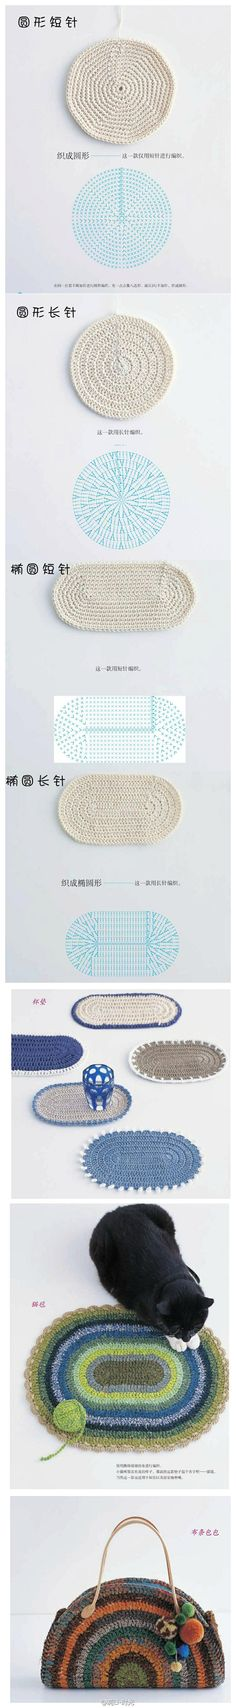 49 best Bolas images on Pinterest | Crochet ball, Hand crafts and ...